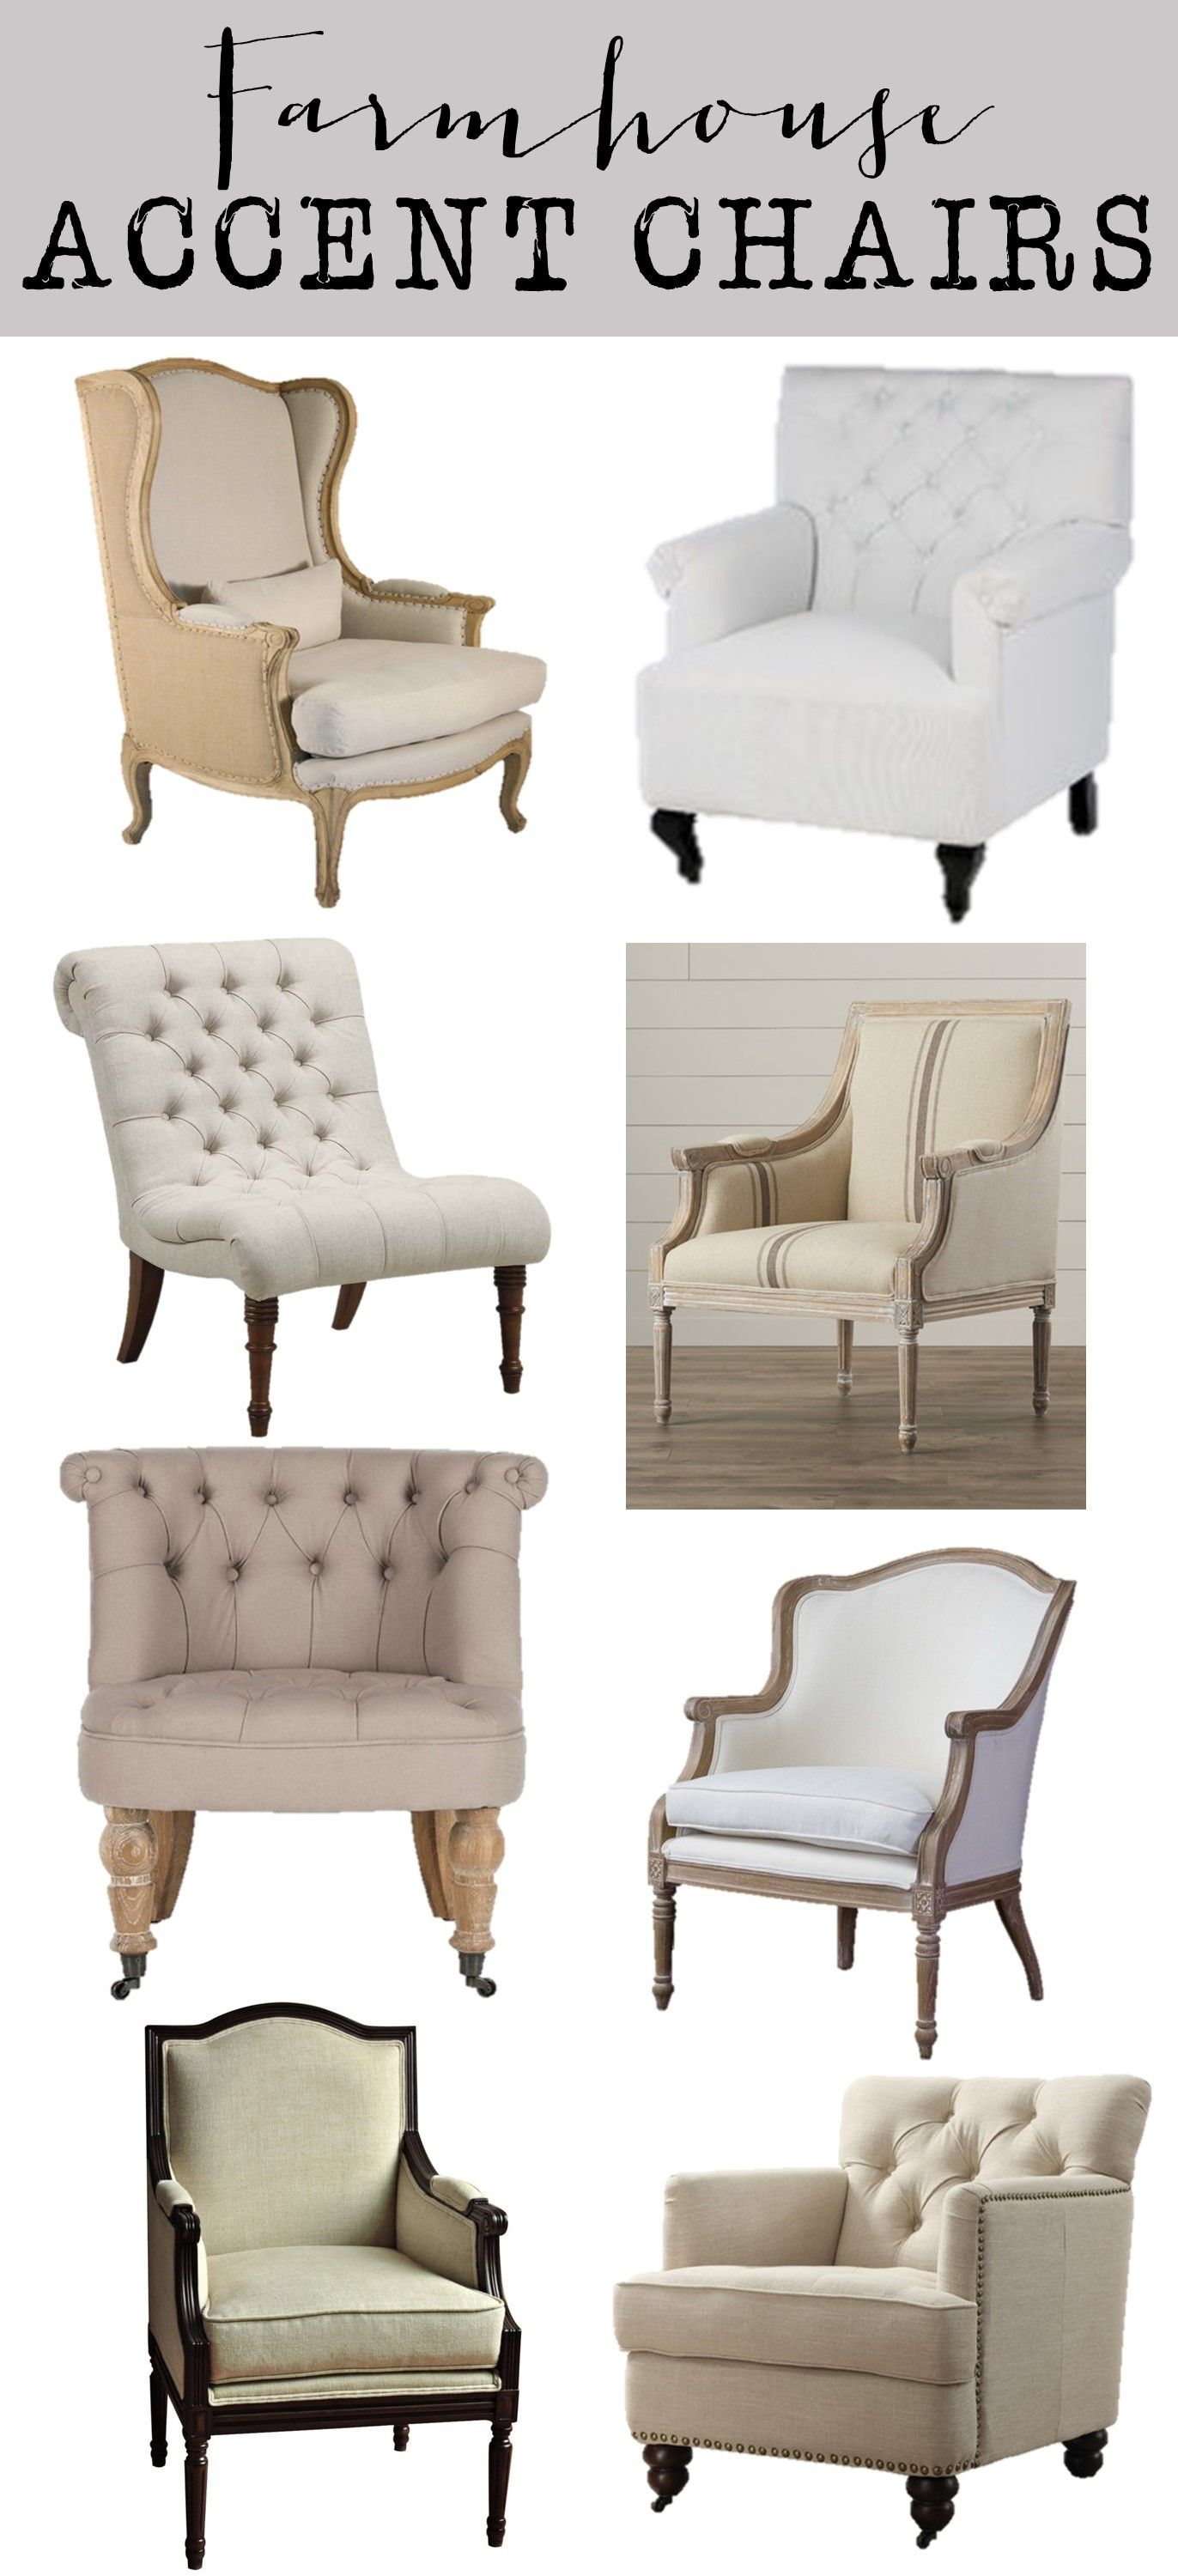 Friday Favorites Farmhouse Accent Chairs House Of Hargrove Neutral Linen Tufted Farmhouse Style Furniture Farmhouse Office Chairs Farmhouse Accent Chair